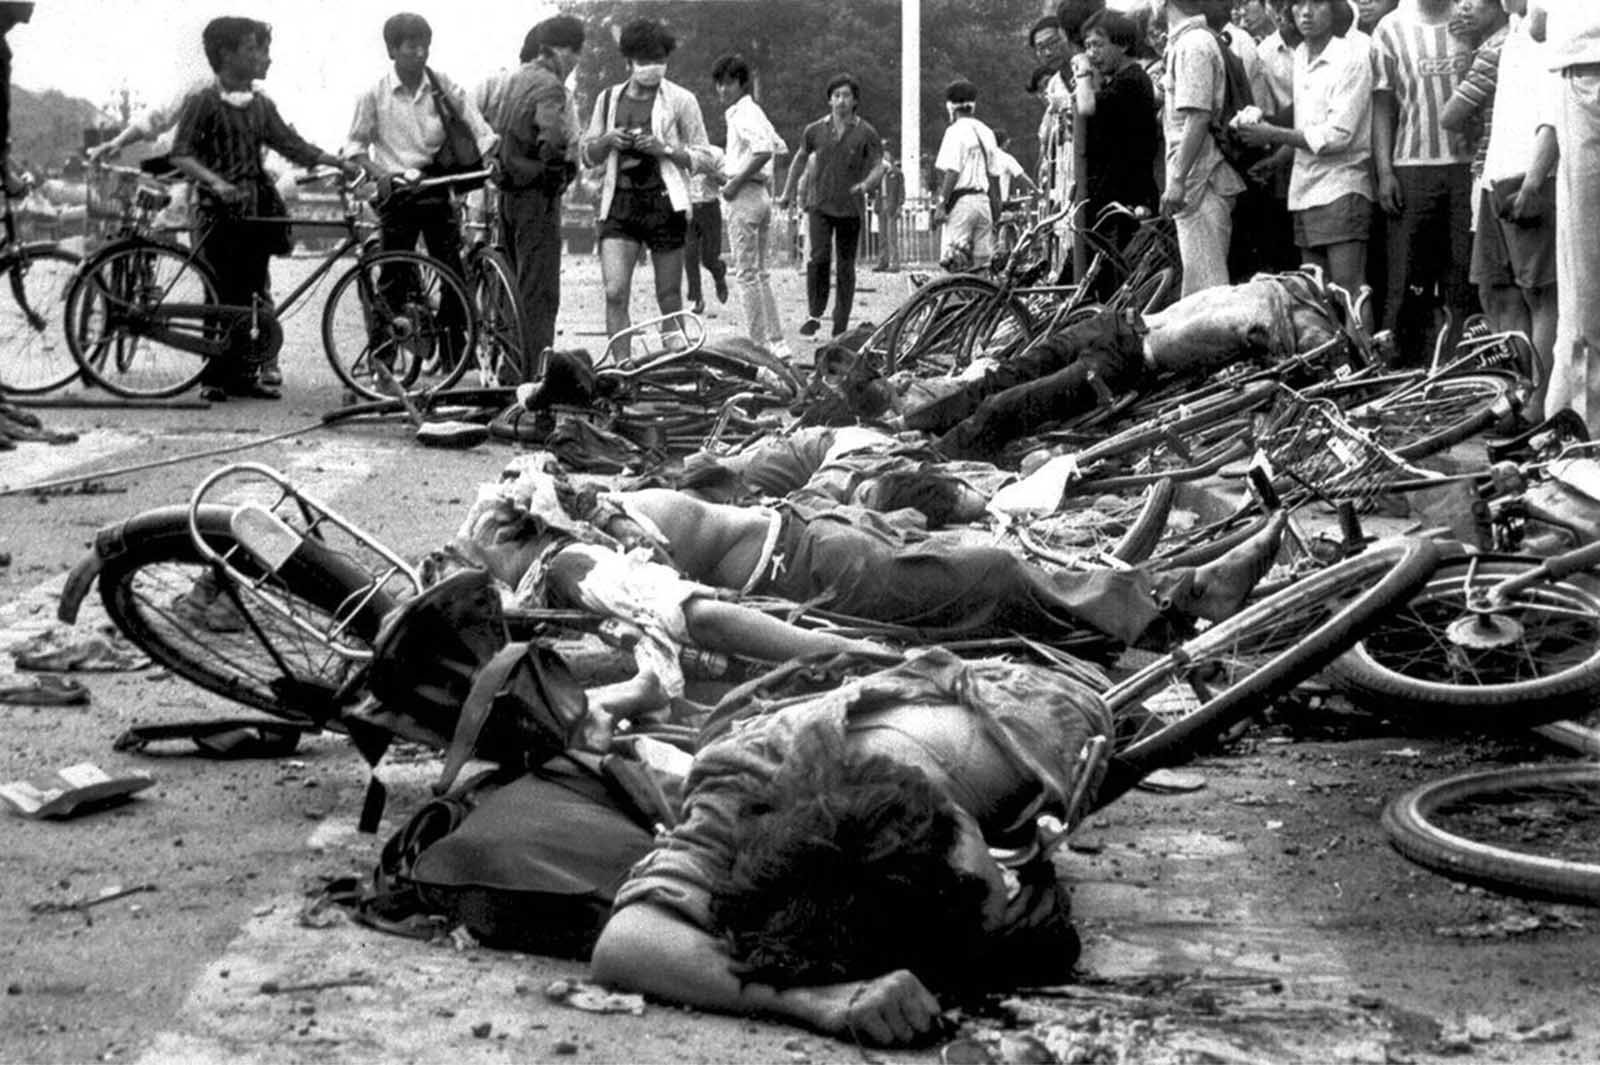 Bodies of dead civilians lie among crushed bicycles near Beijing's Tiananmen Square, on June 4, 1989.